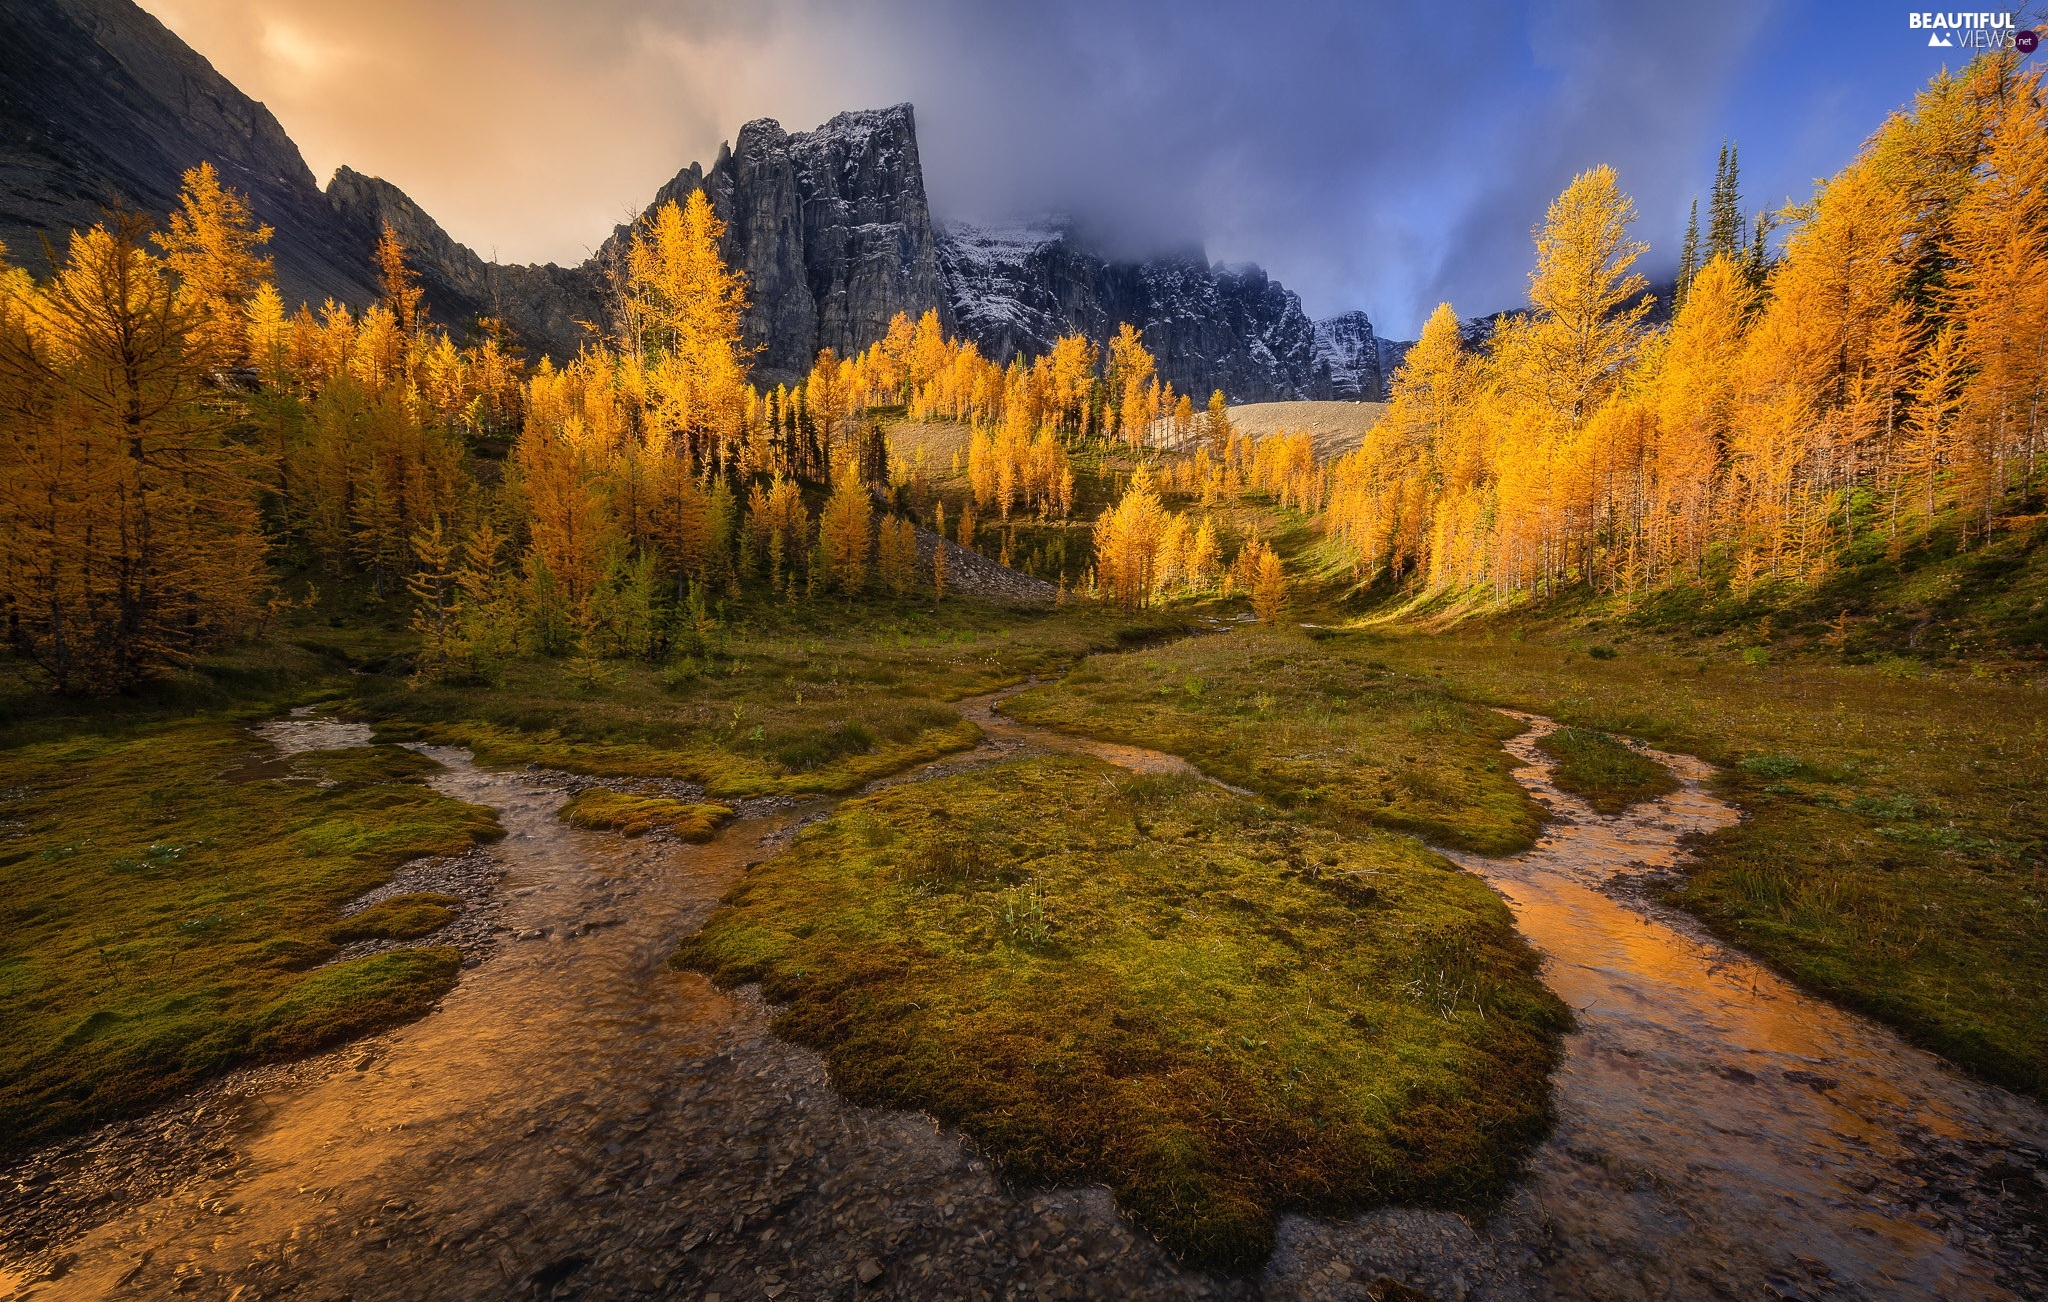 Mountains, trees, River, autumn, stream, viewes